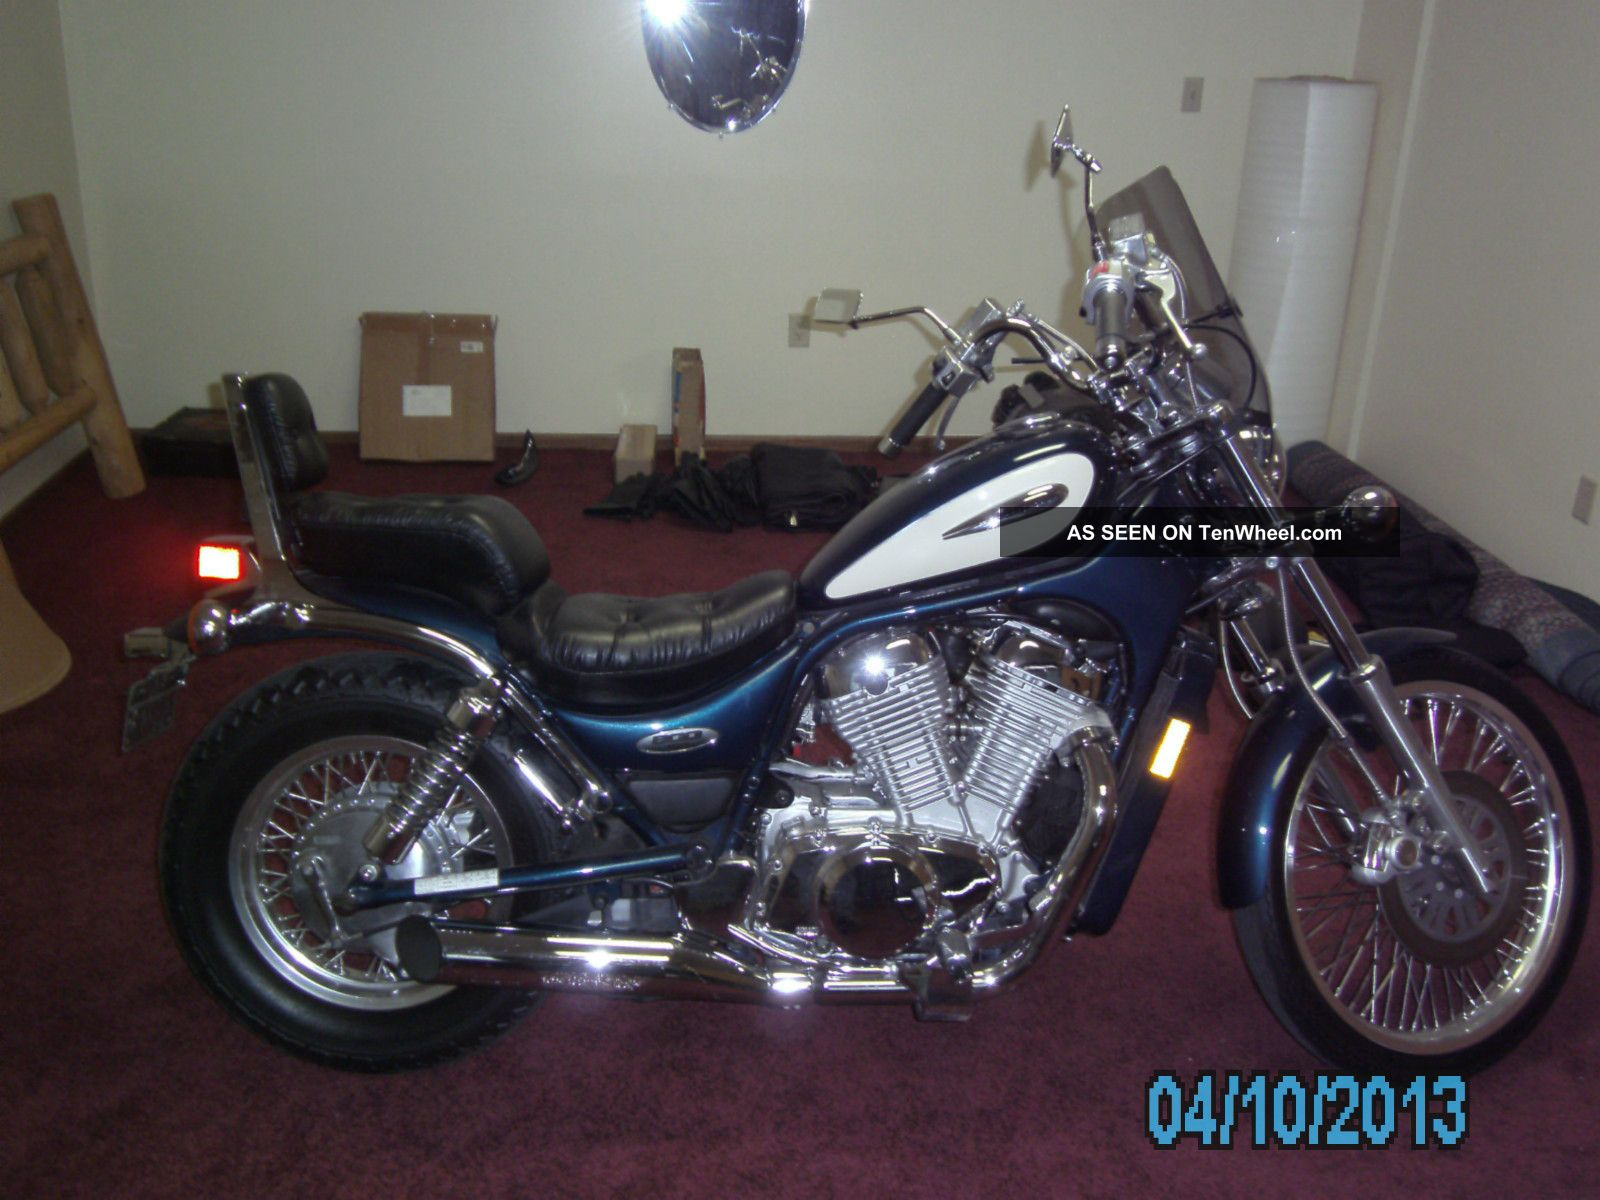 1998 suzuki intruder vs 800. Black Bedroom Furniture Sets. Home Design Ideas